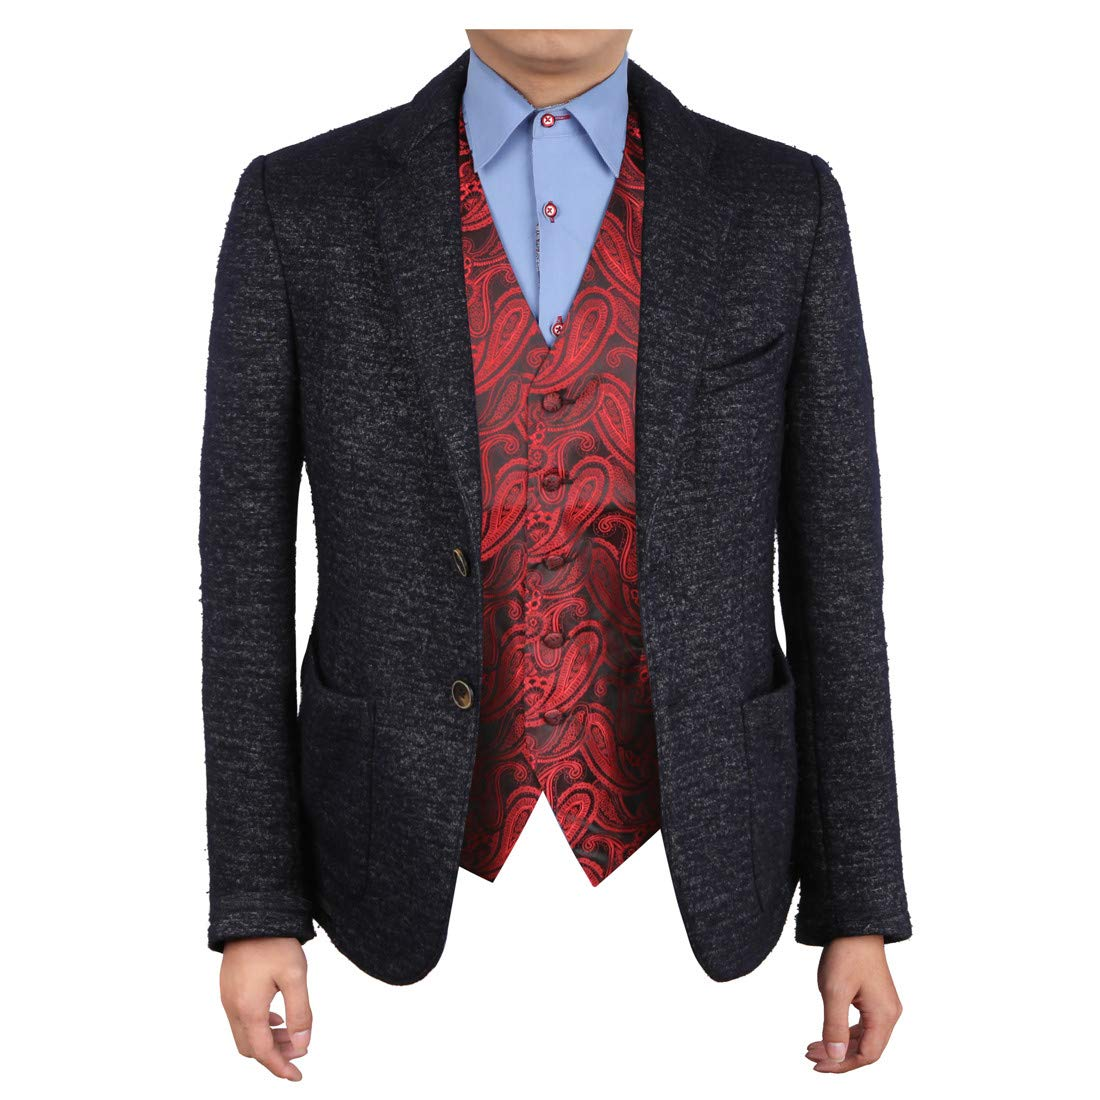 Epoint EGC1B07C-M Red Black Paisley Gifts for the Groom Waistcoat Woven Microfiber Absolutely Mens Vests Medium Vest by Epoint